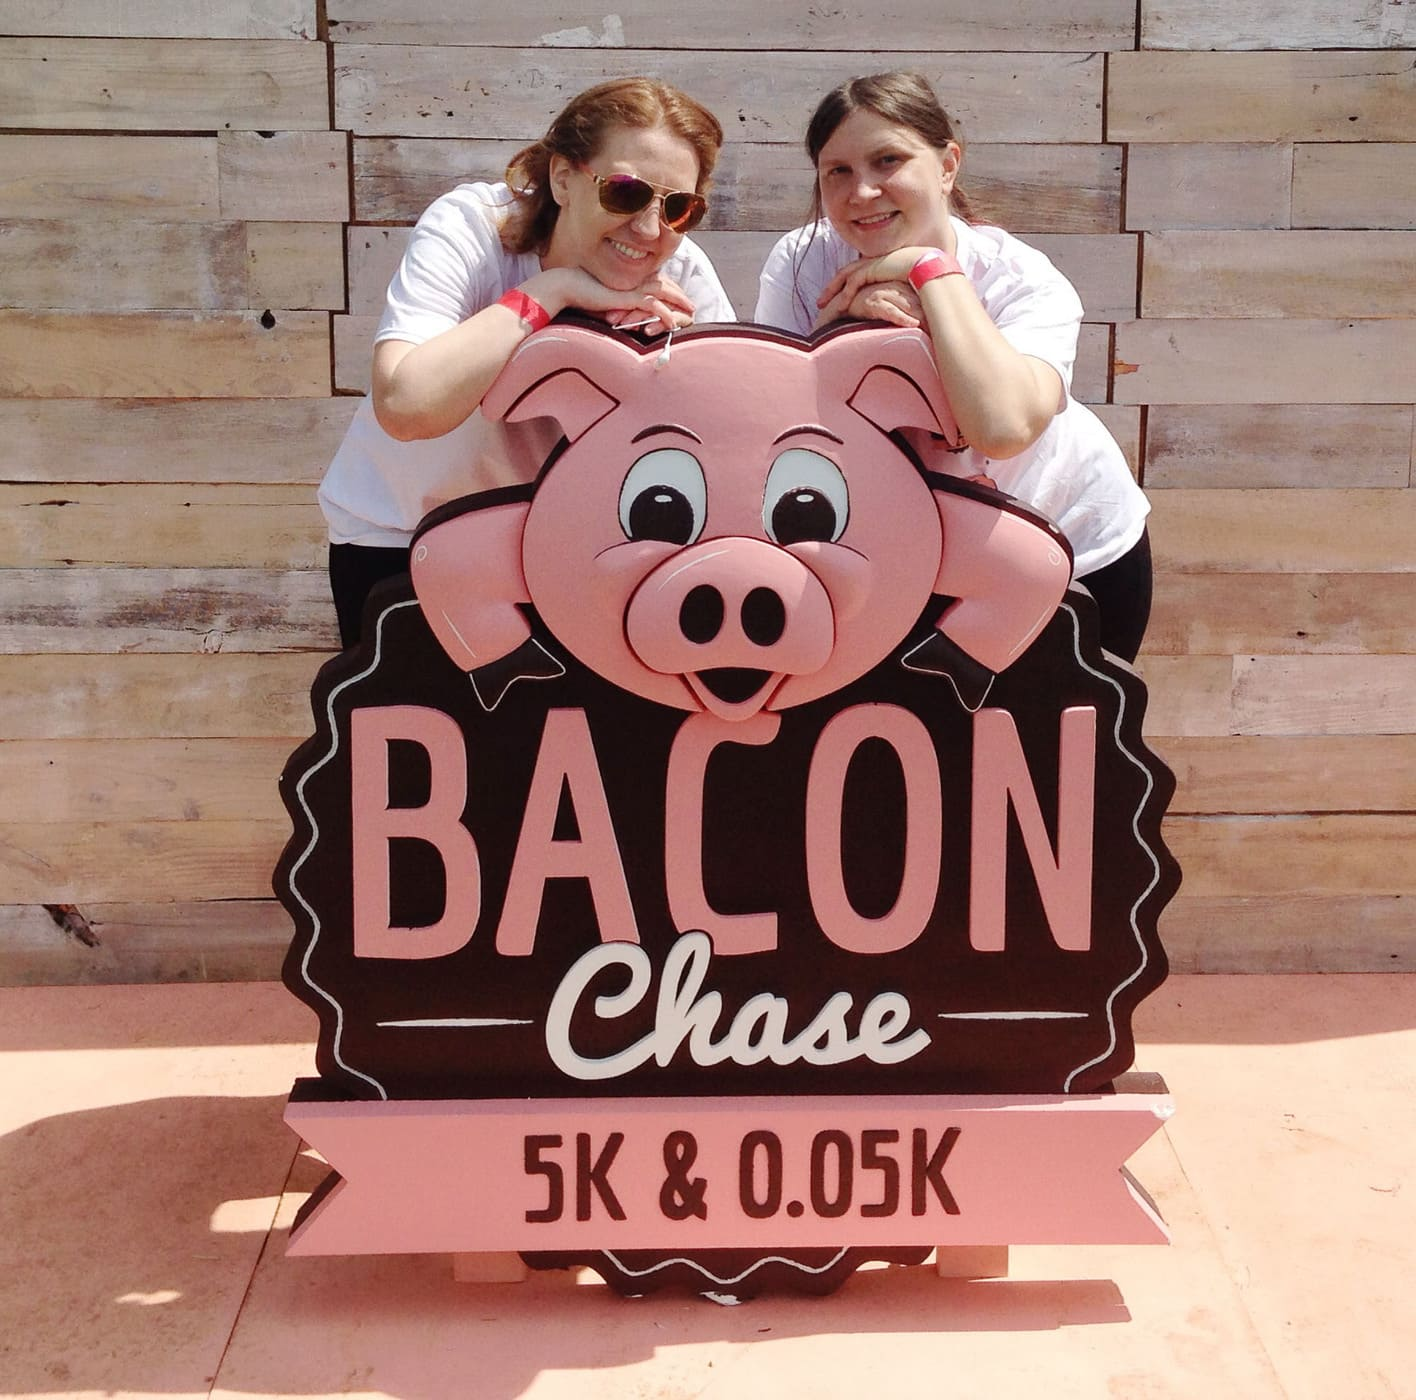 Life List: Run a 5K - Bacon Chase 5K